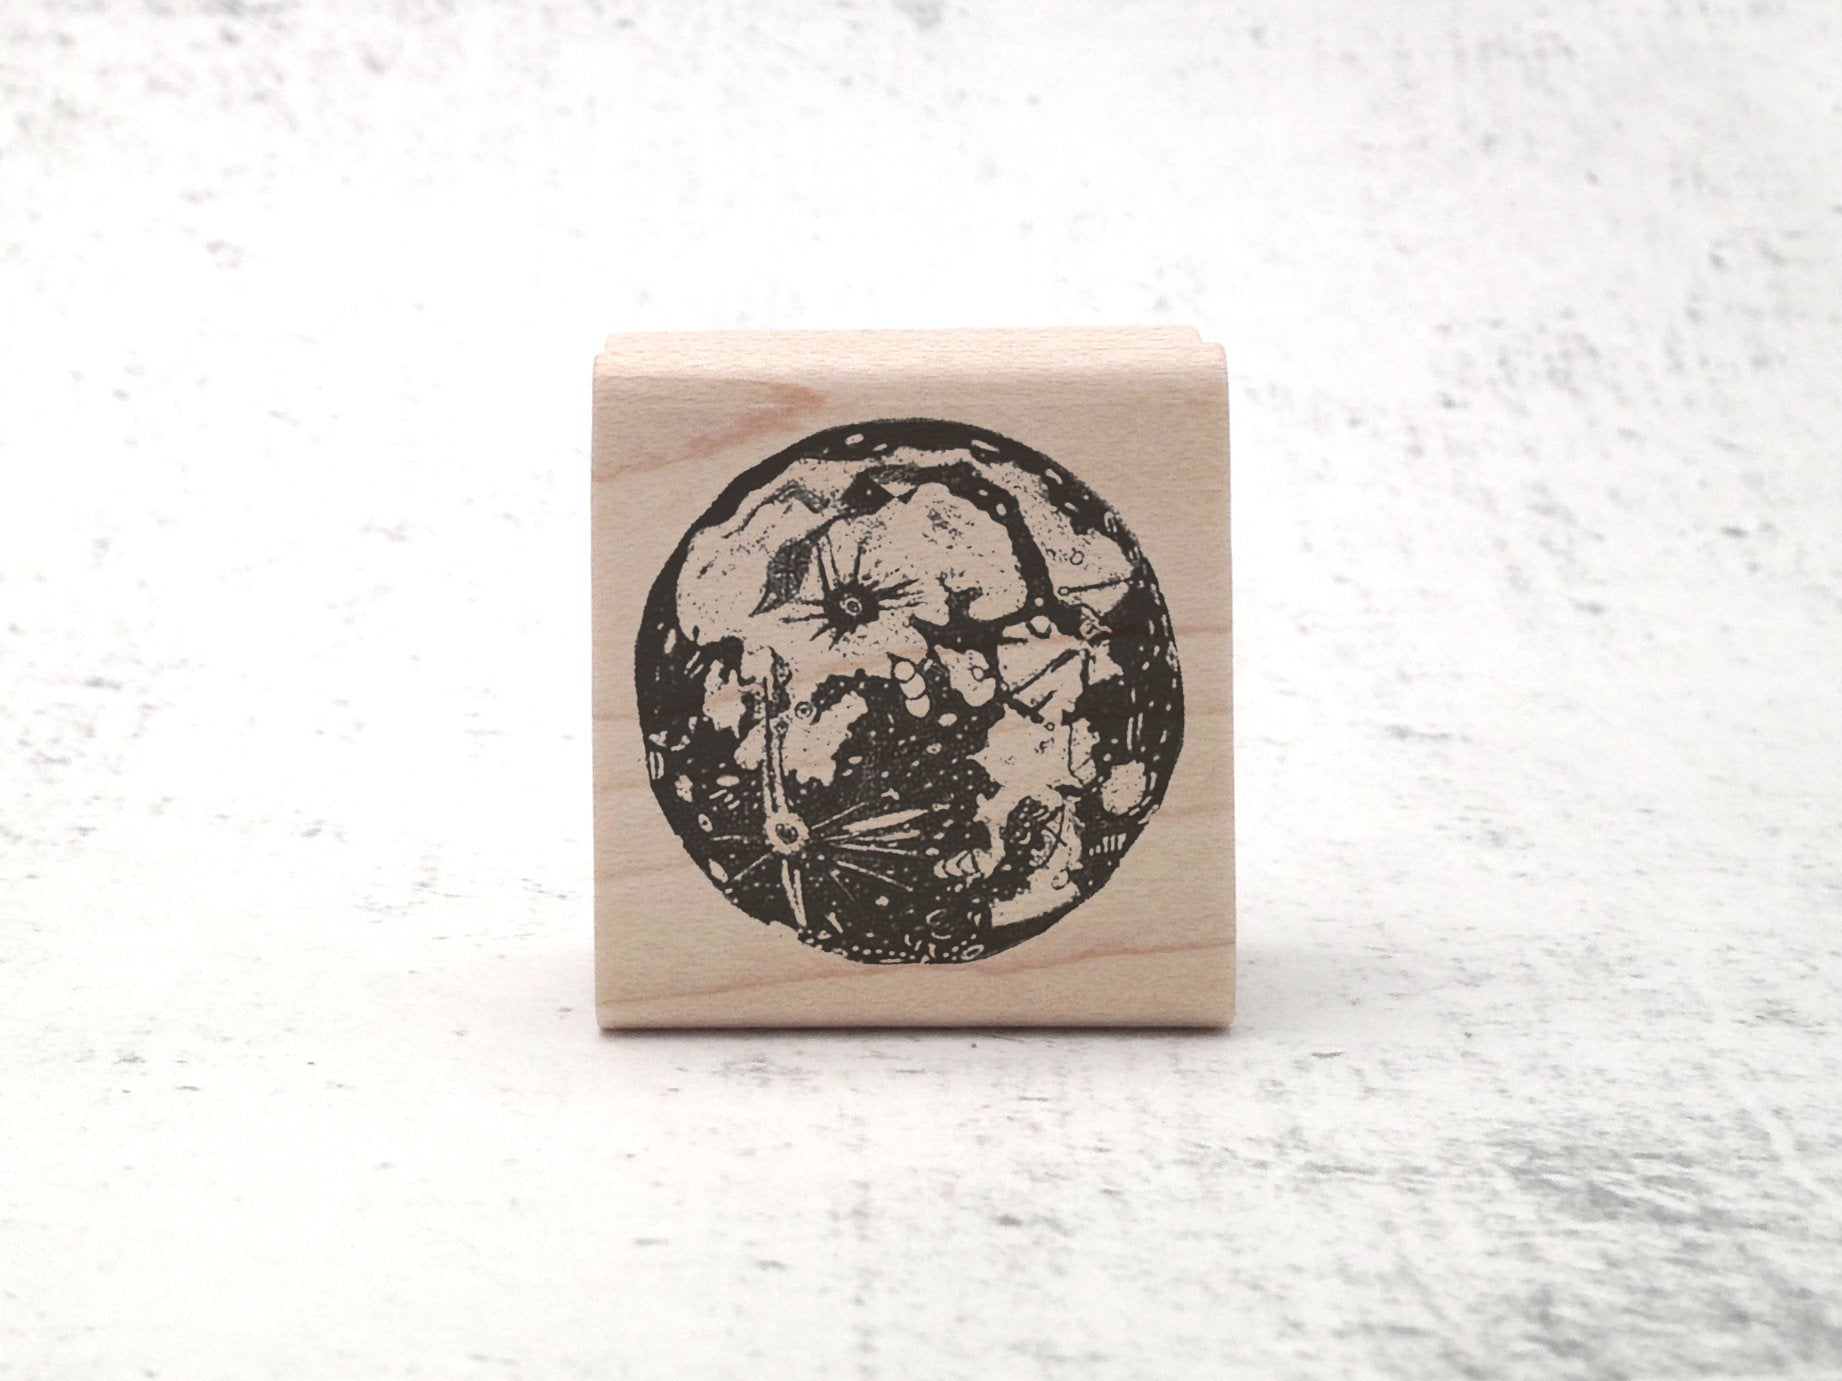 Moon Woodcut-Style Stamp - Astronomy / Celestial Rubber Stamp - STEM / Outer Space Stationary